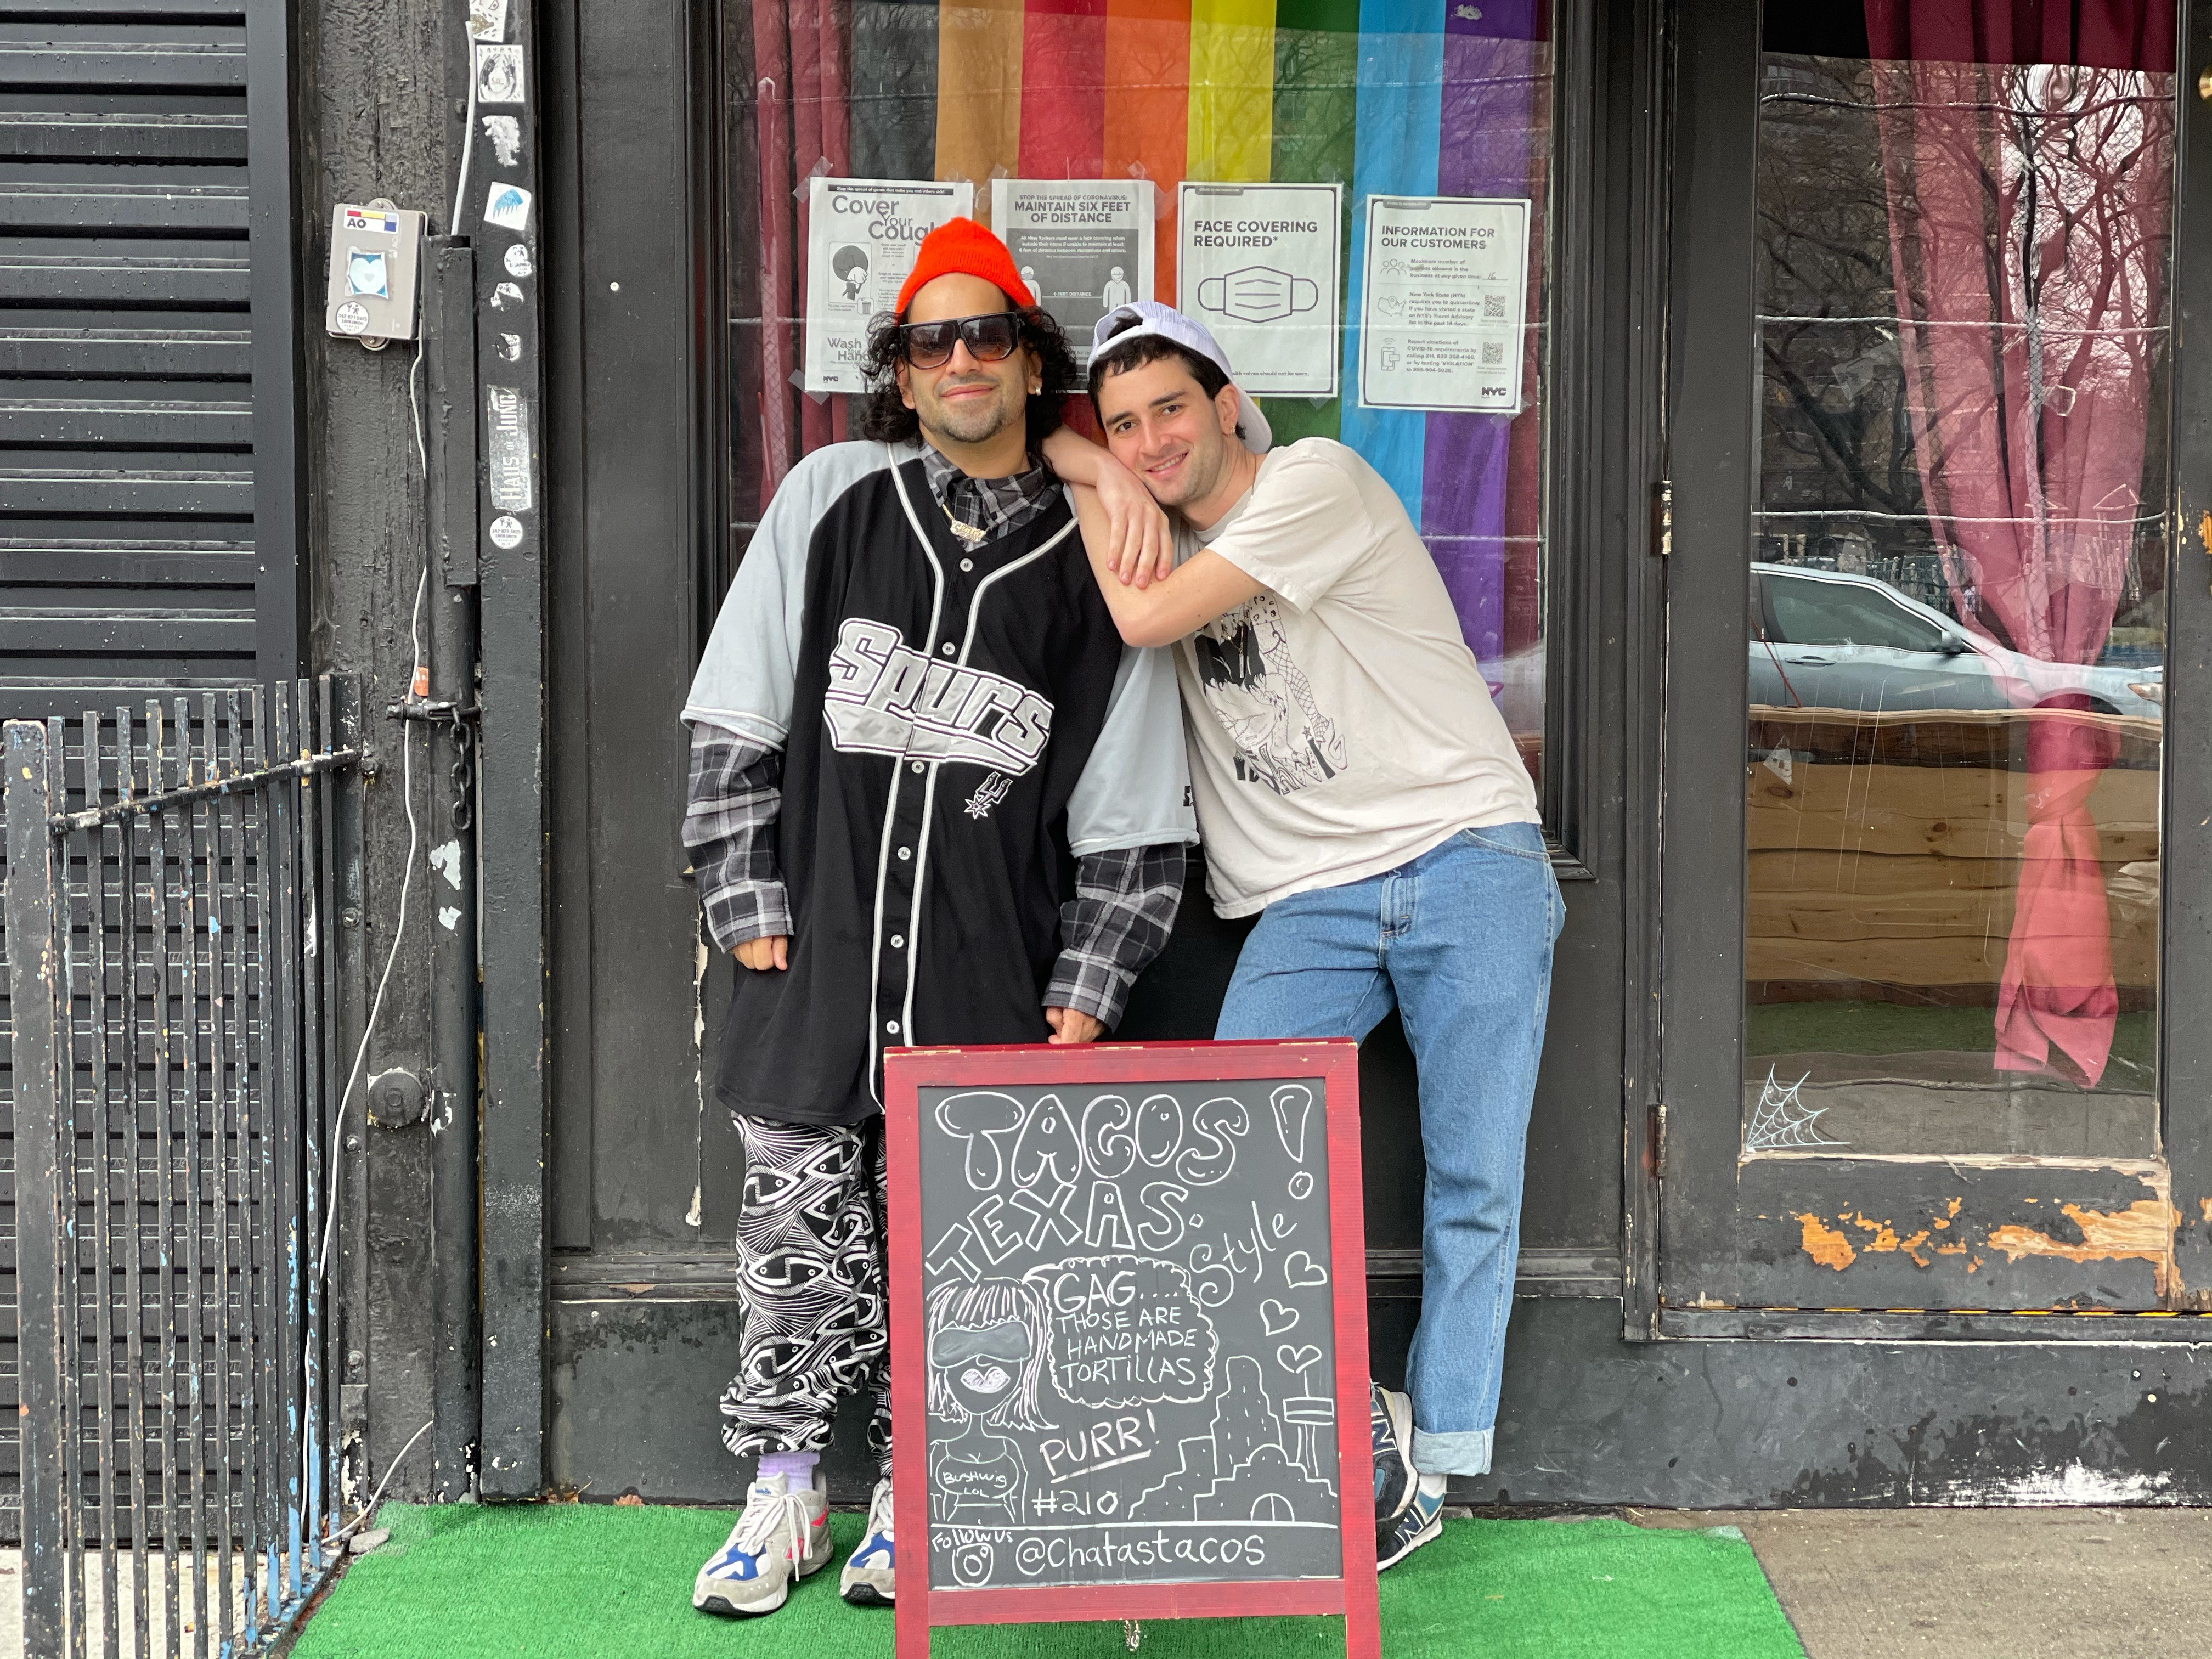 Two people are standing next to each other in front of a store with a signboard at their feet